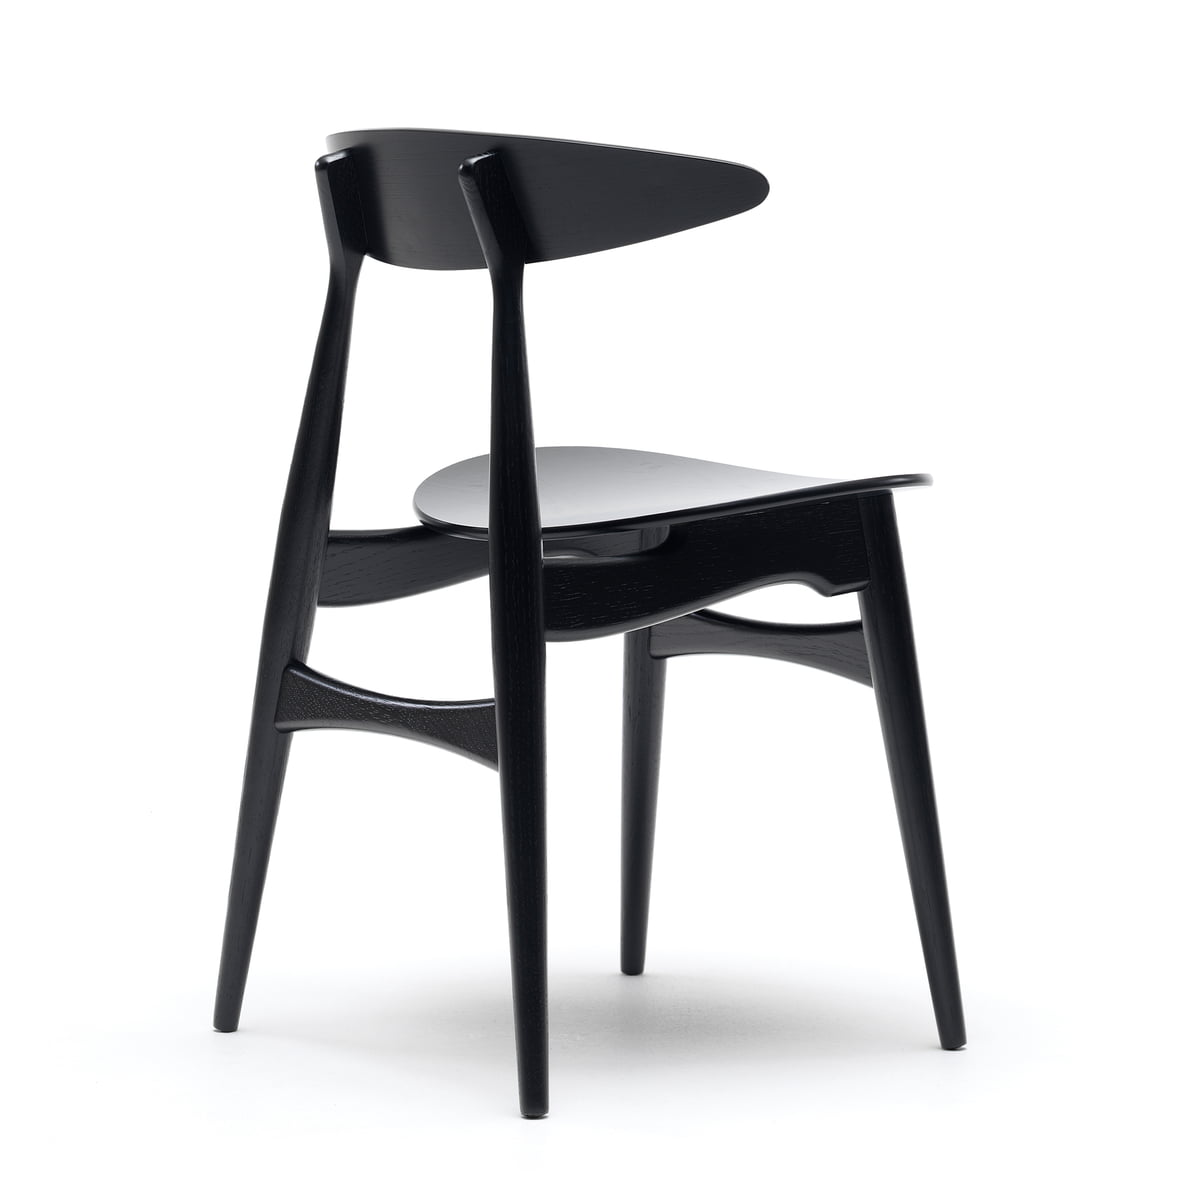 carl hansen ch33 t stuhl im wohndesign shop. Black Bedroom Furniture Sets. Home Design Ideas